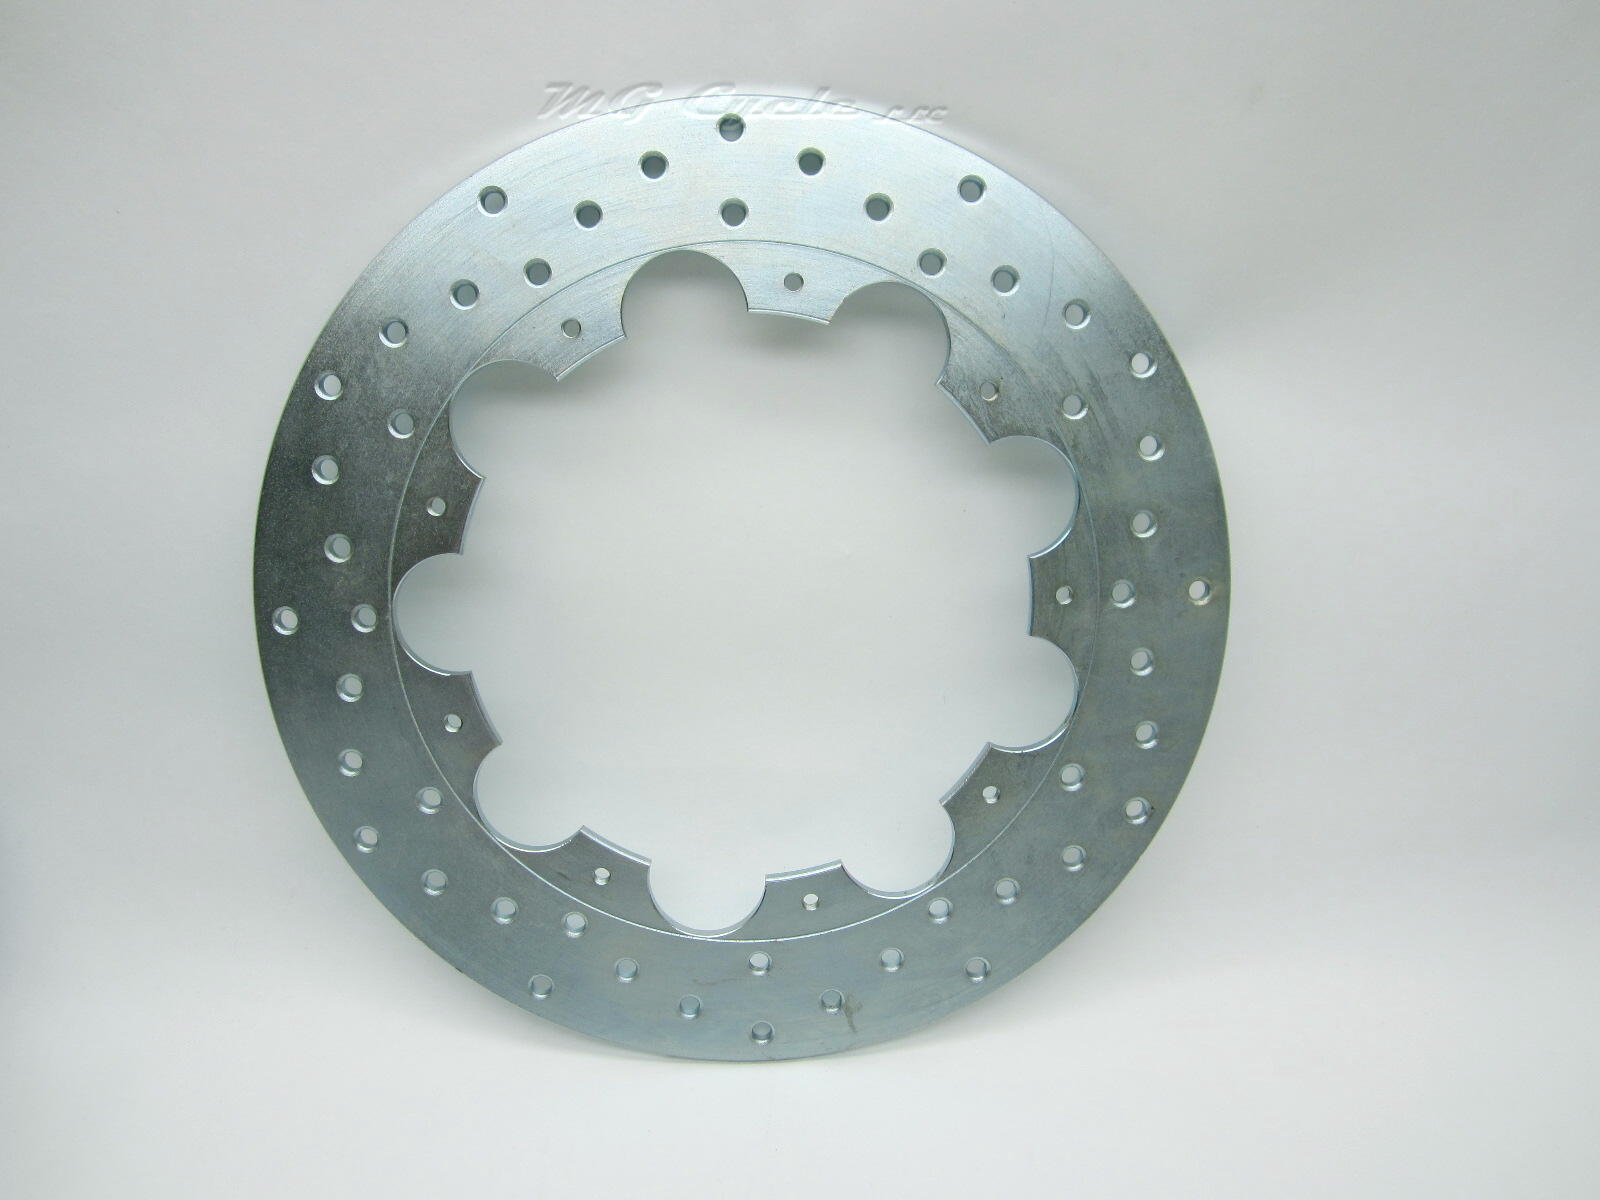 300mm drilled brake disk 850 LeMans LeMans II / III CX Convert